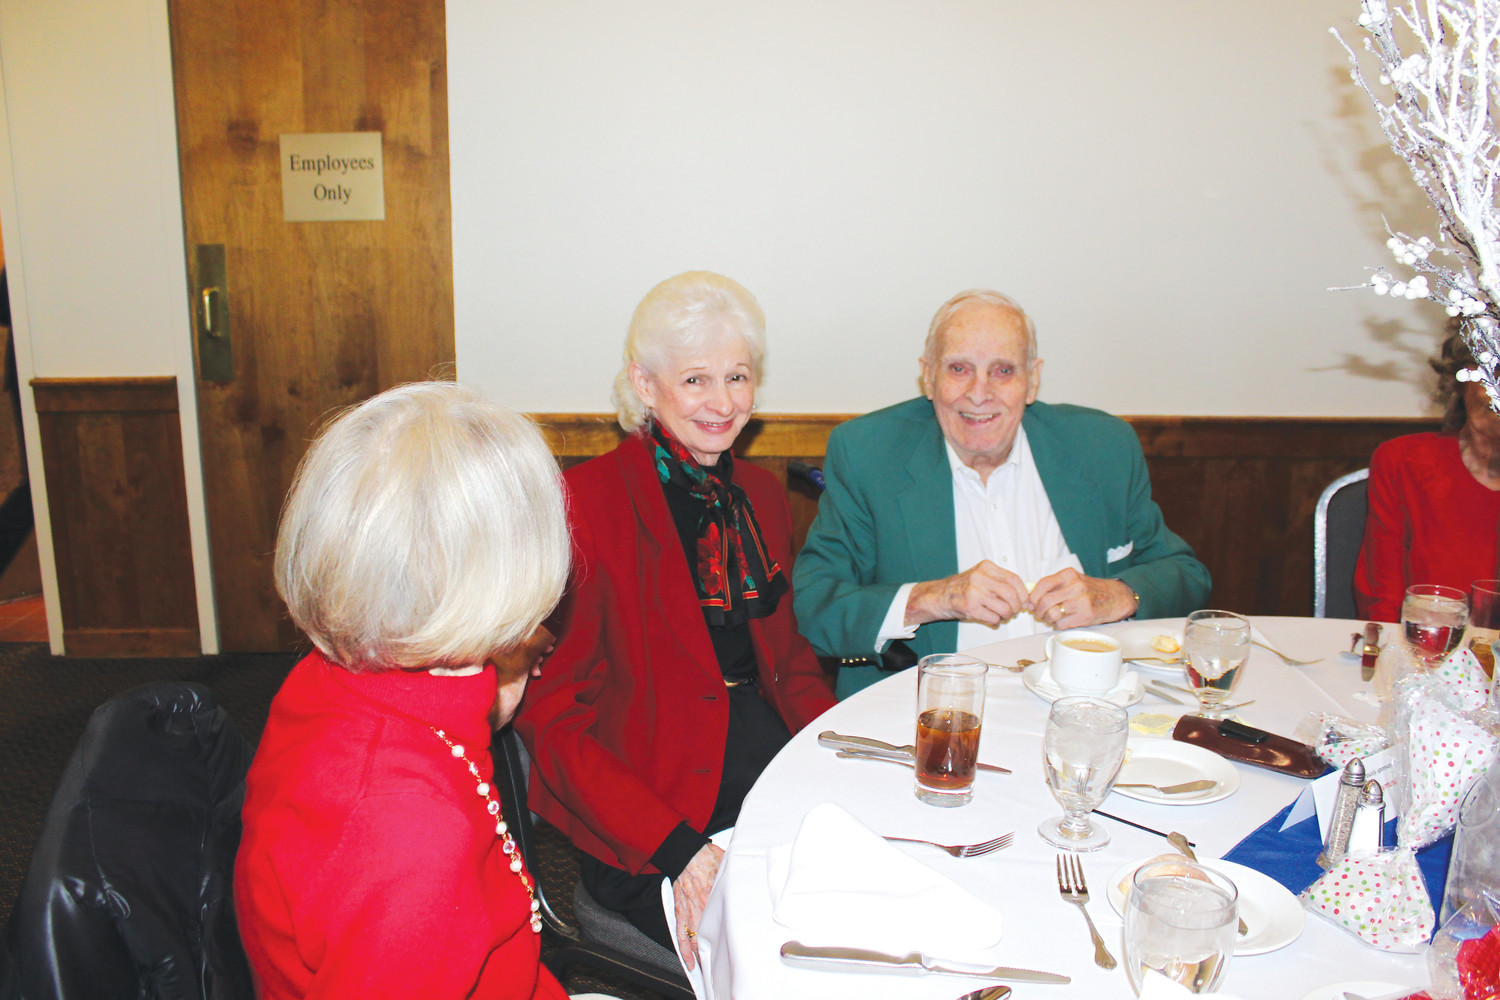 Judy and Bill Robertson visit with friends during the Living and Aging Well holiday luncheon at the Lone Tree Country Club.